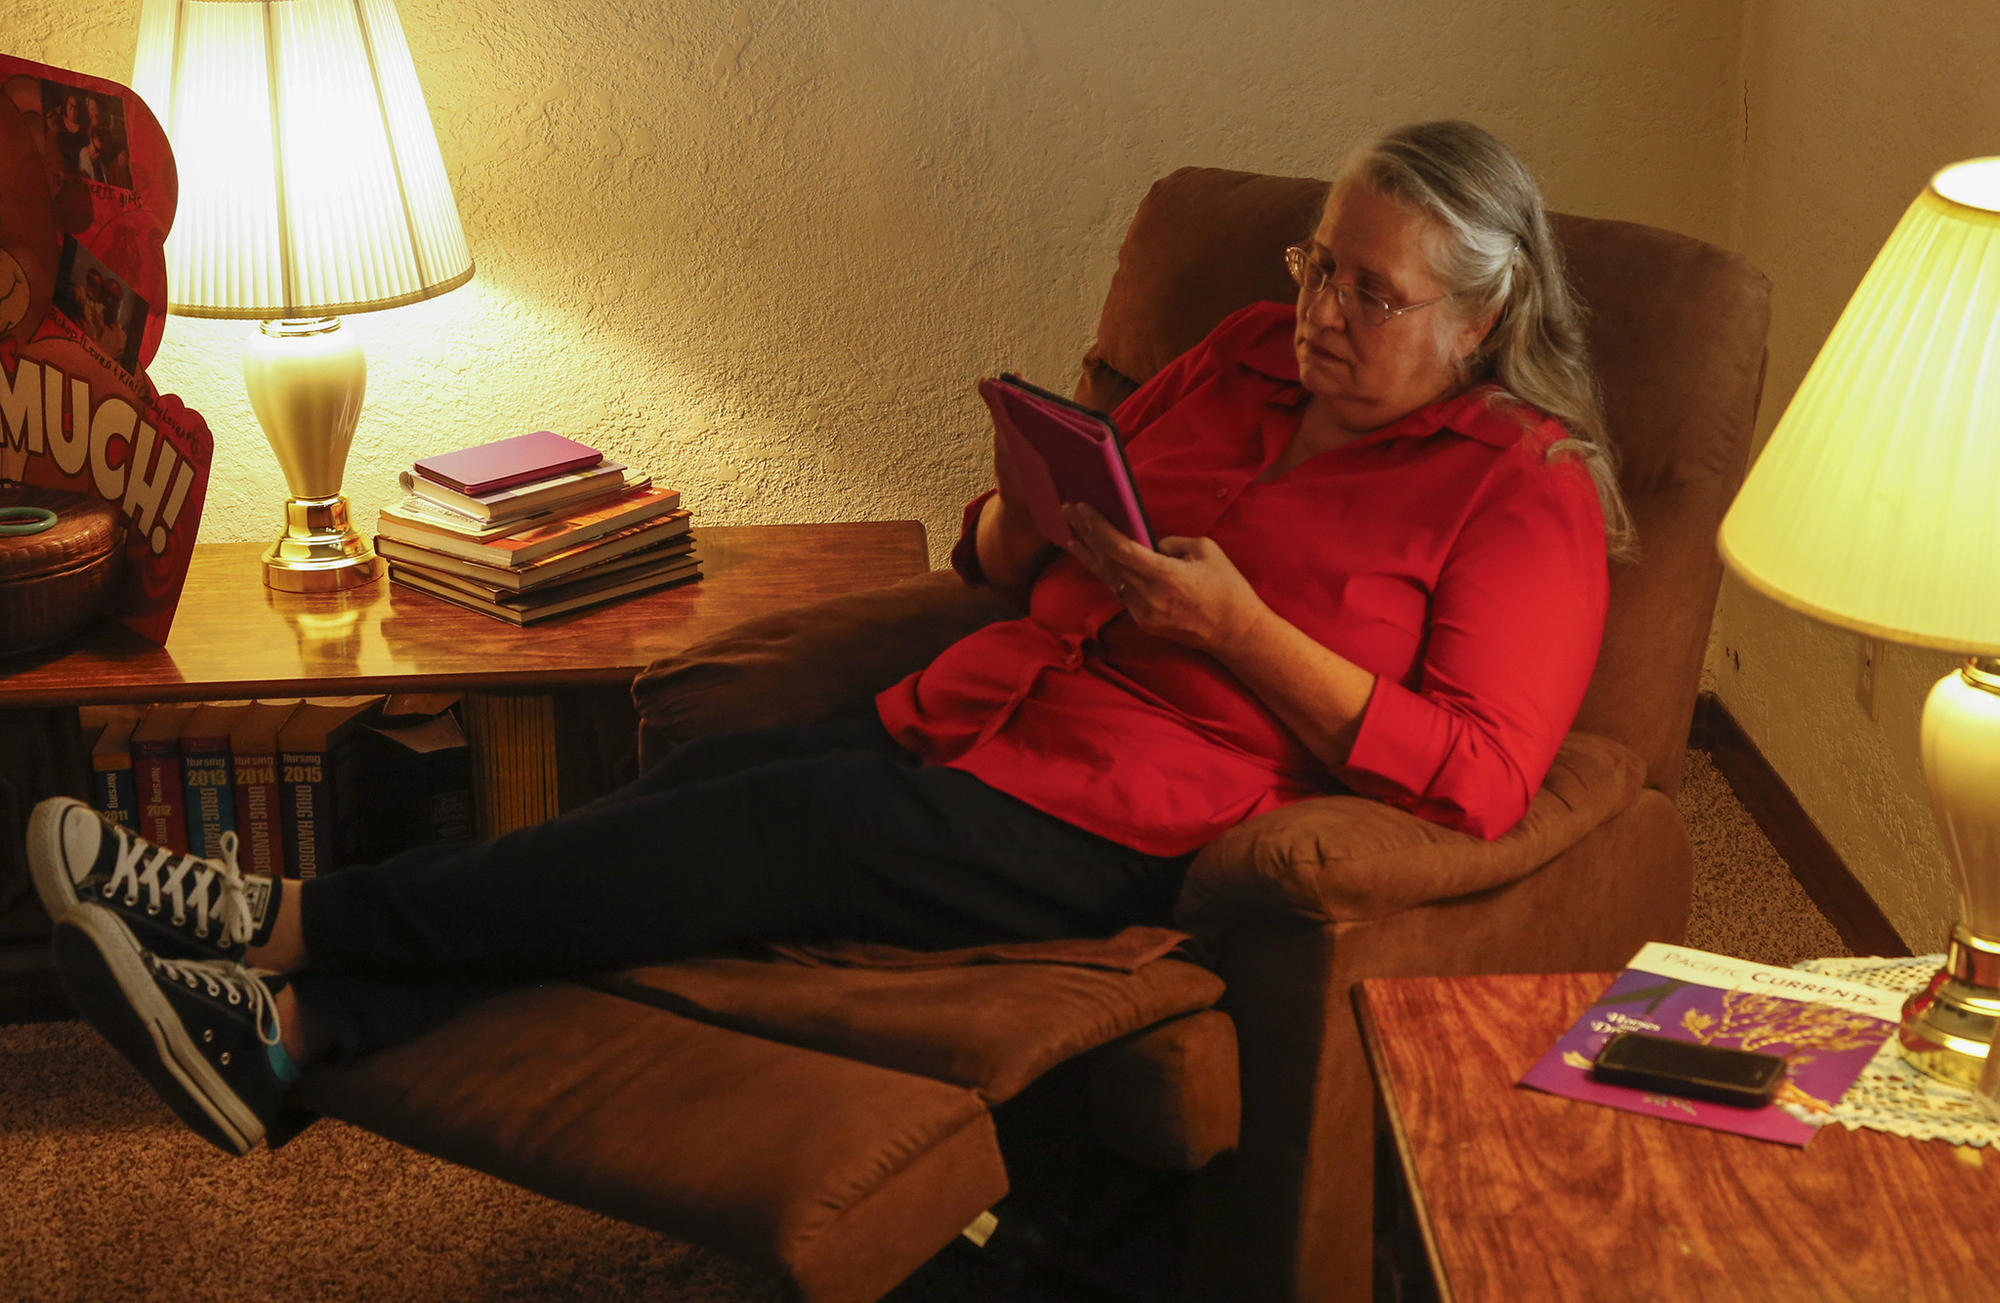 When she isn't being the caregiver for her mother, Long Beach resident Cheri Brown spends her spare time using the coloring app, Recolor on her iPad Mini.